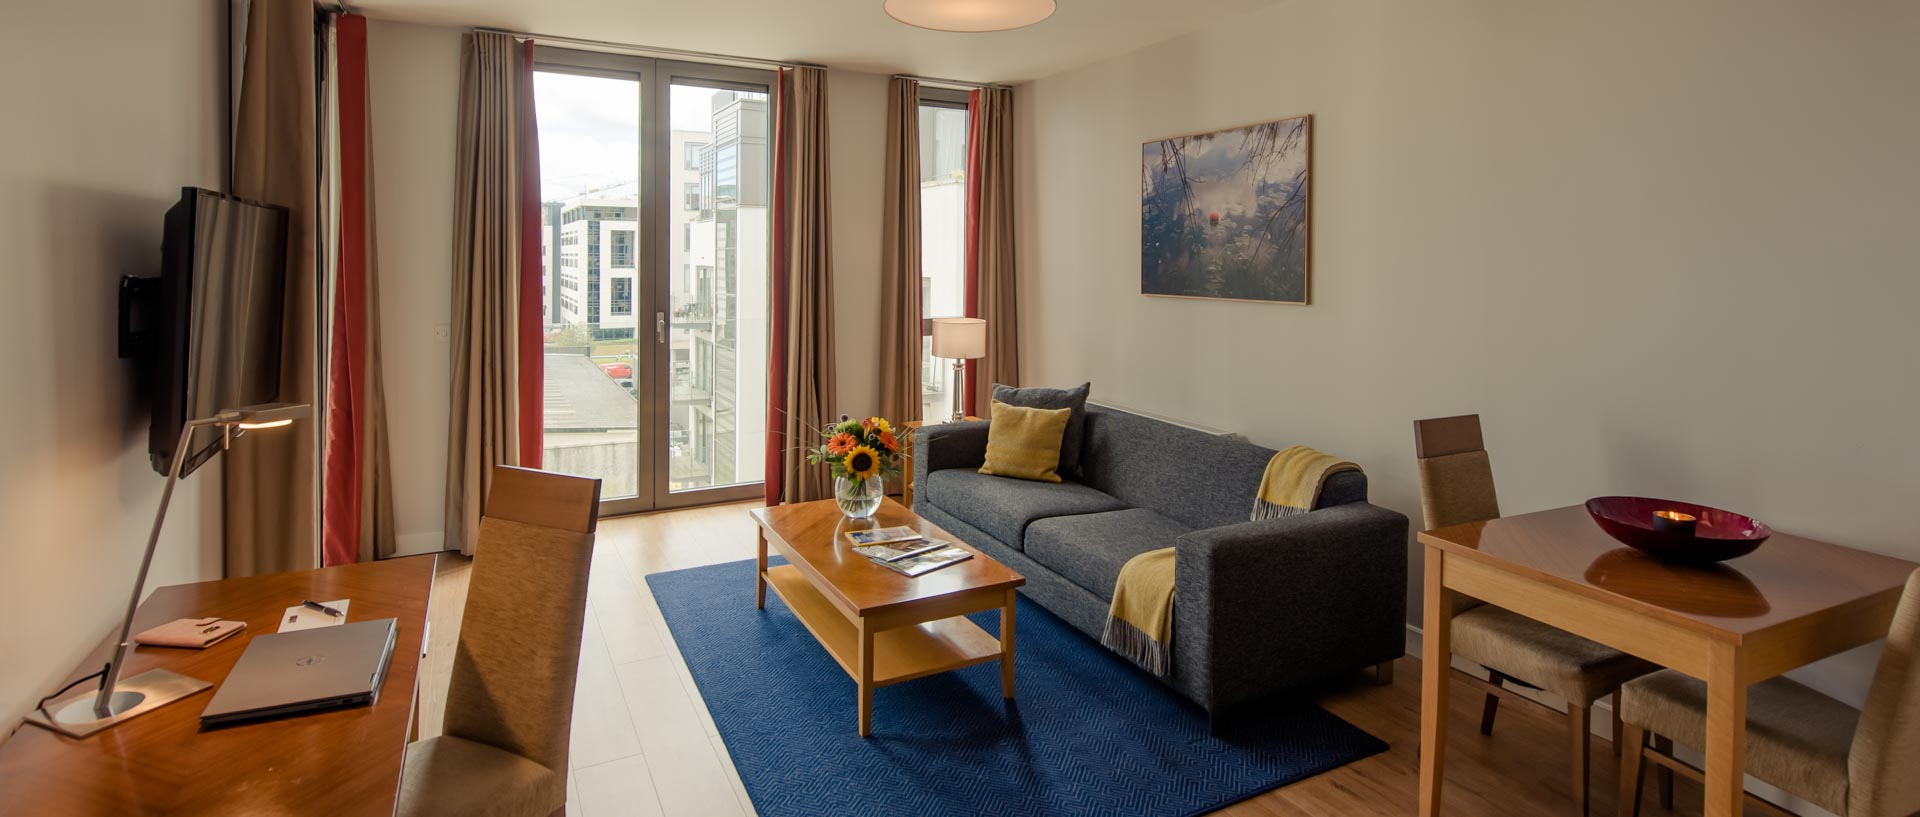 PREMIER SUITES Dublin Sandyford full living room